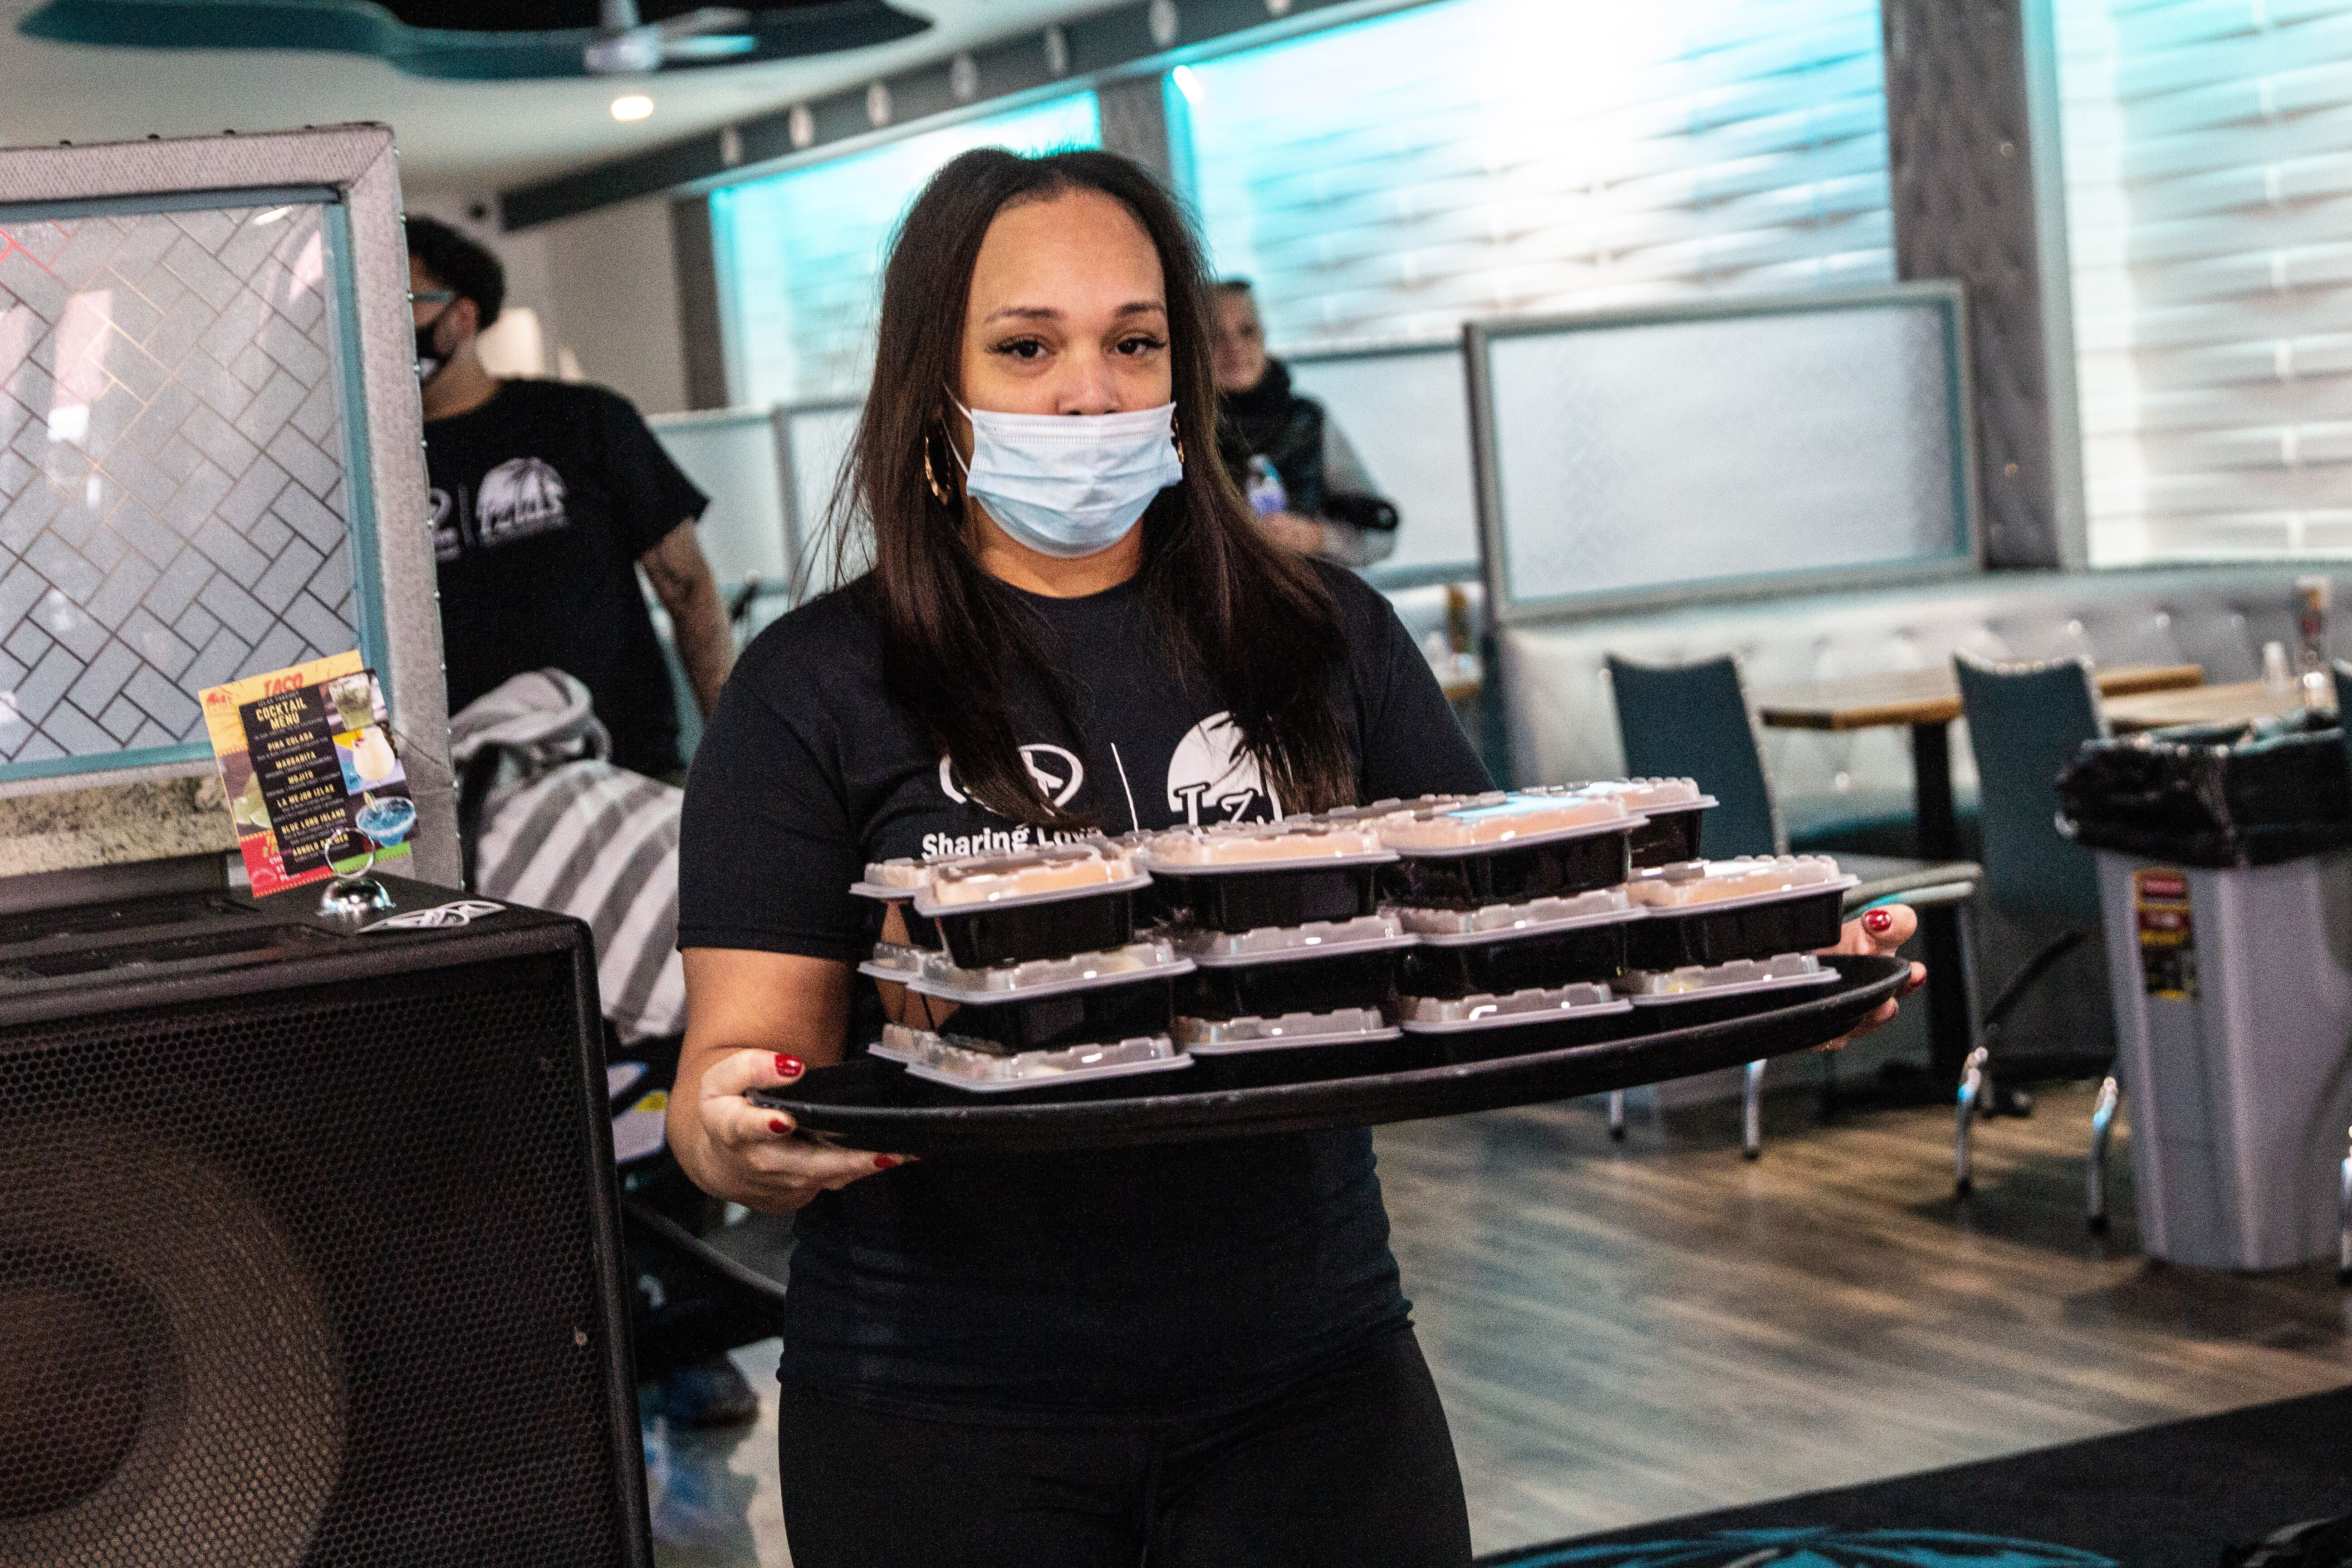 Christina Mclendon carries a plate of food during a giveaway event